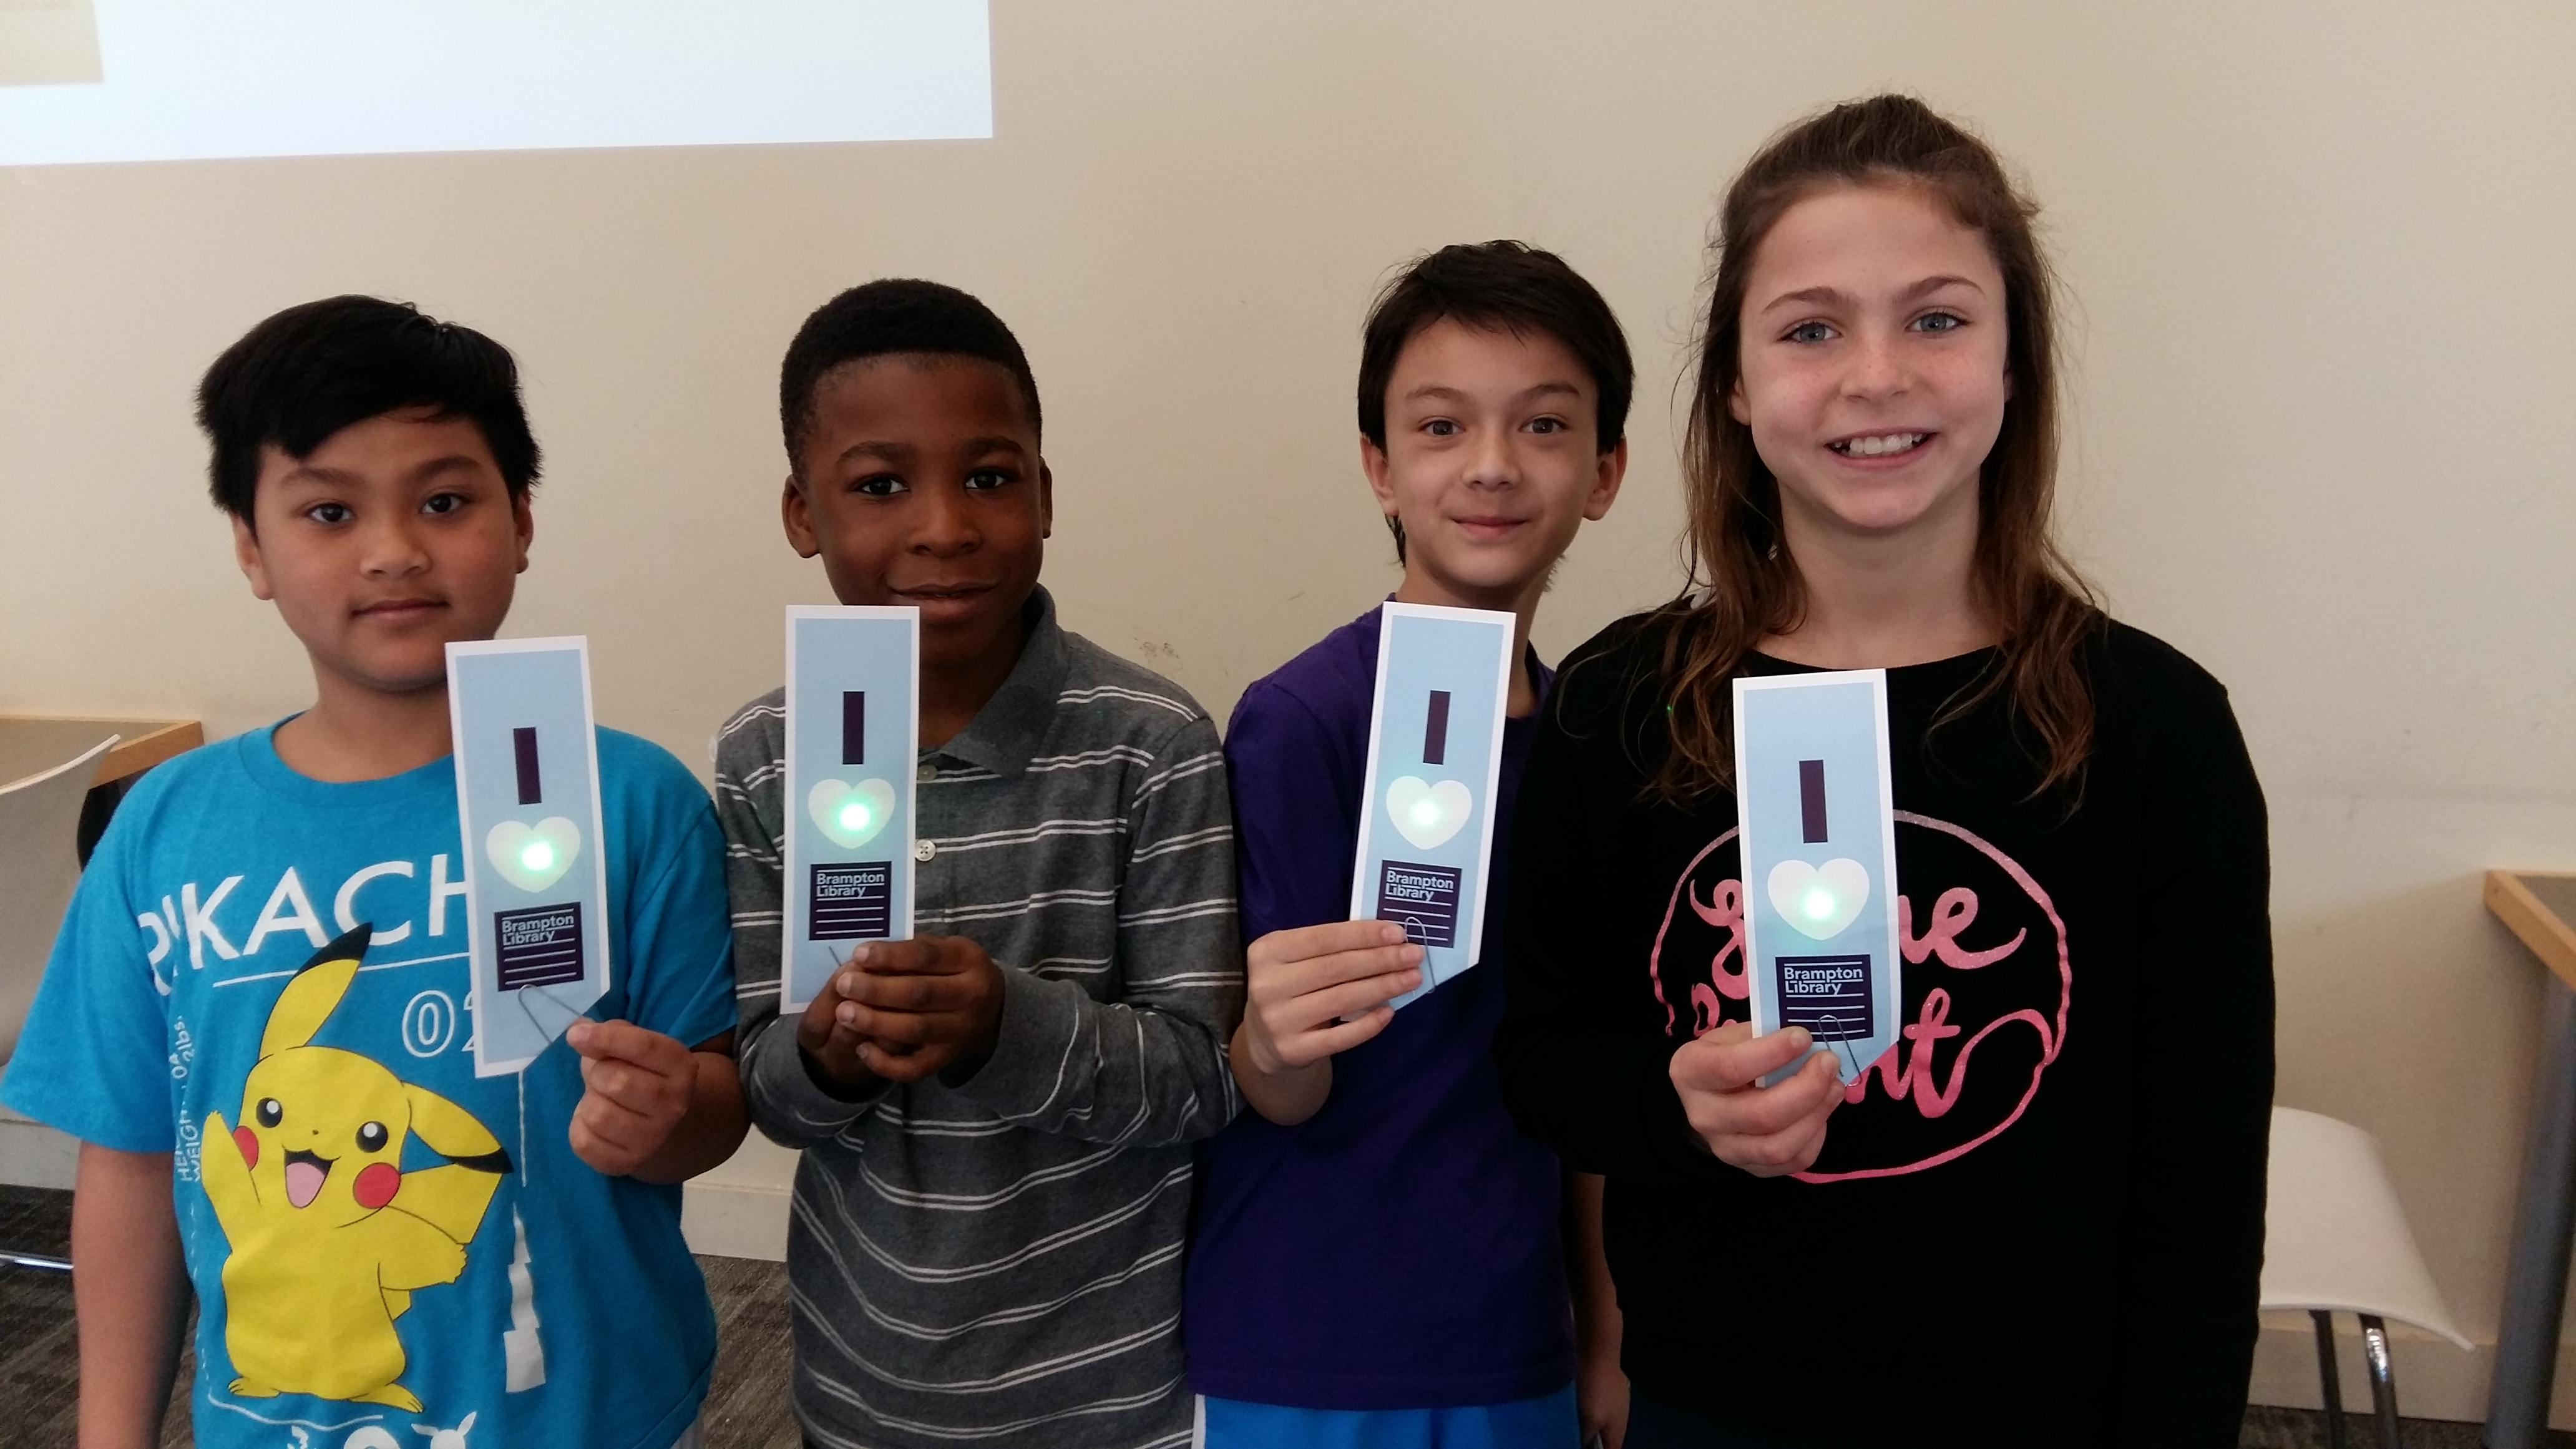 Four students holding Brampton Library bookmarks